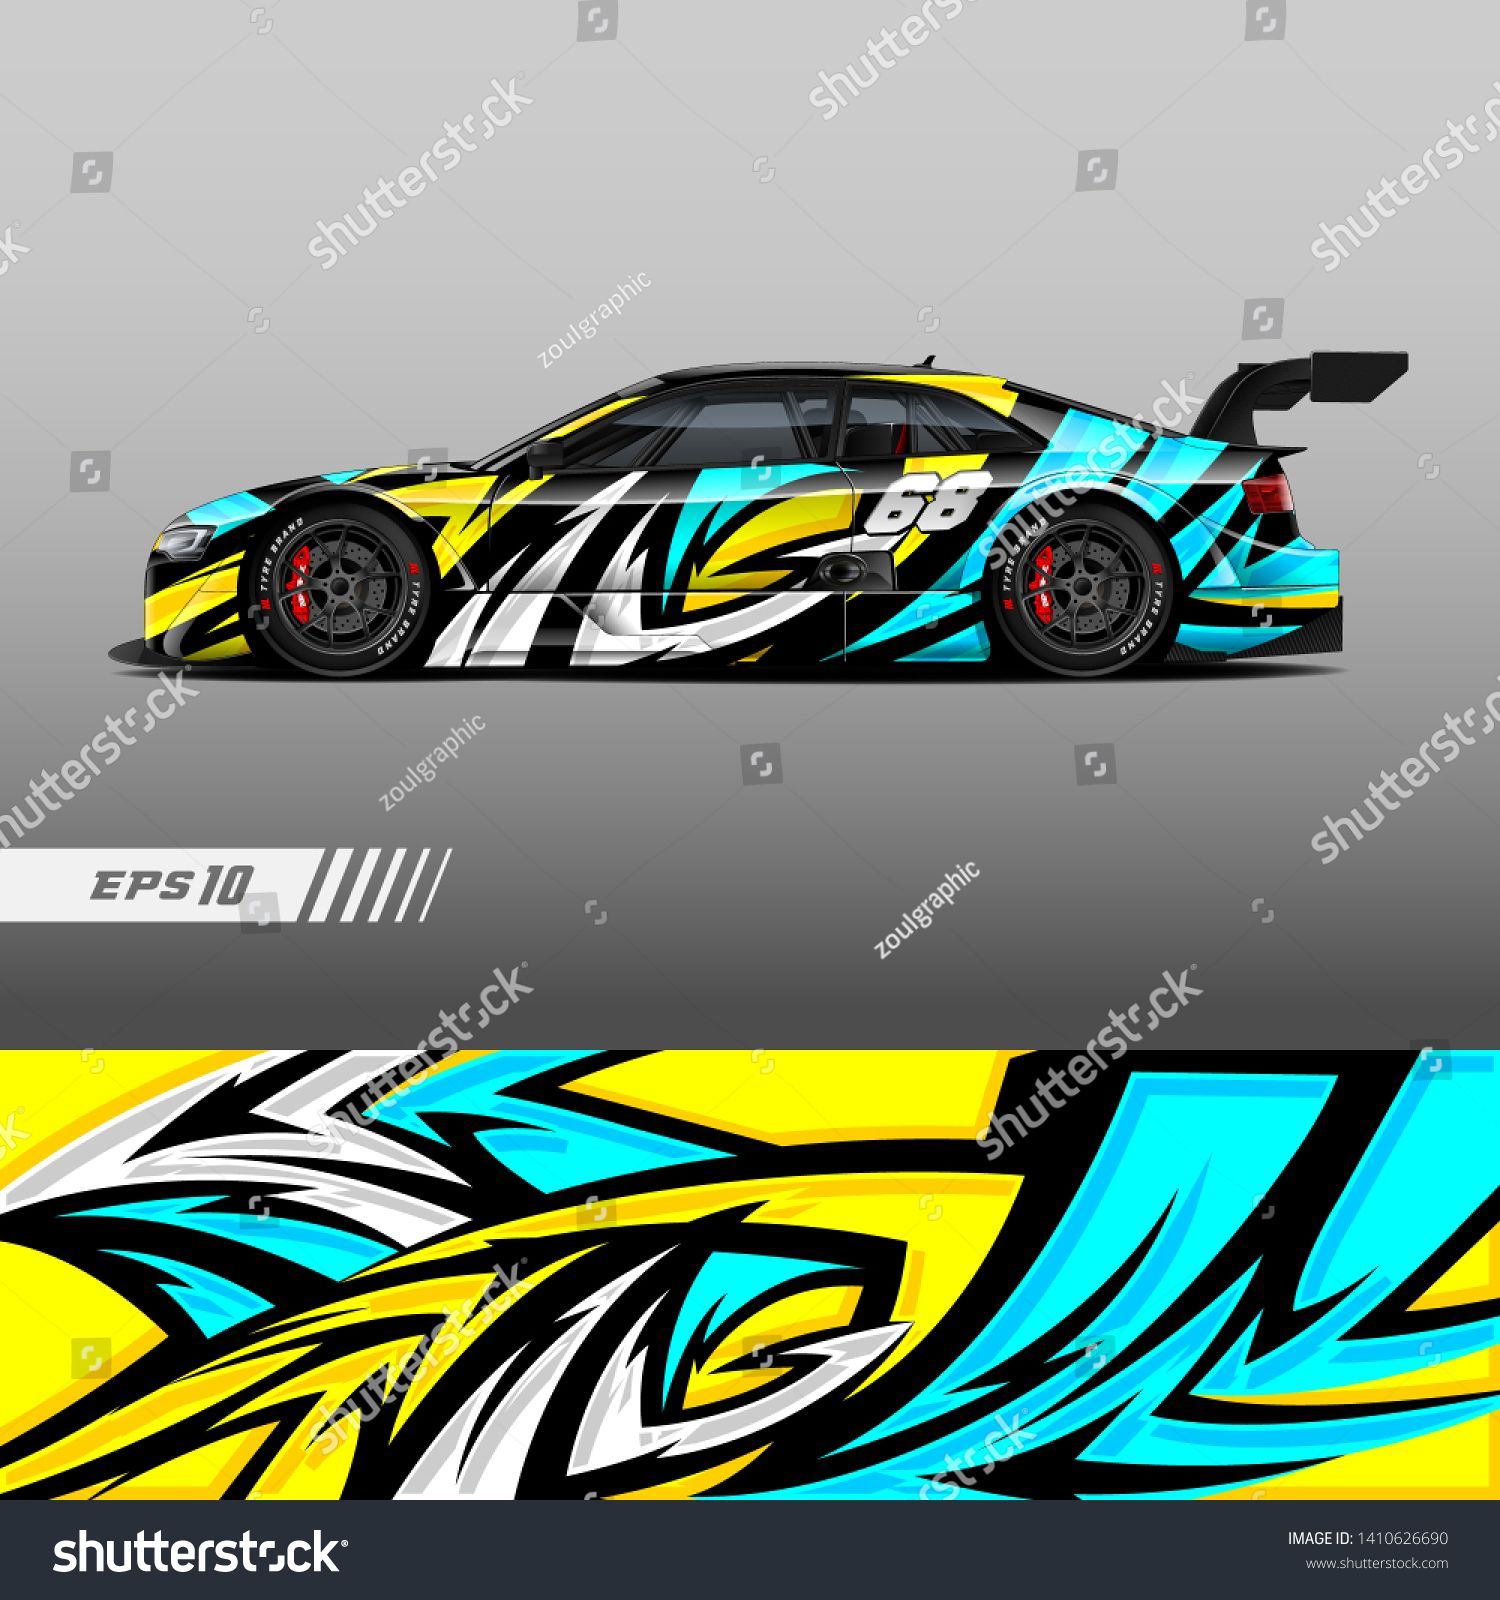 Racing car livery design  Graphic abstract stripe racing